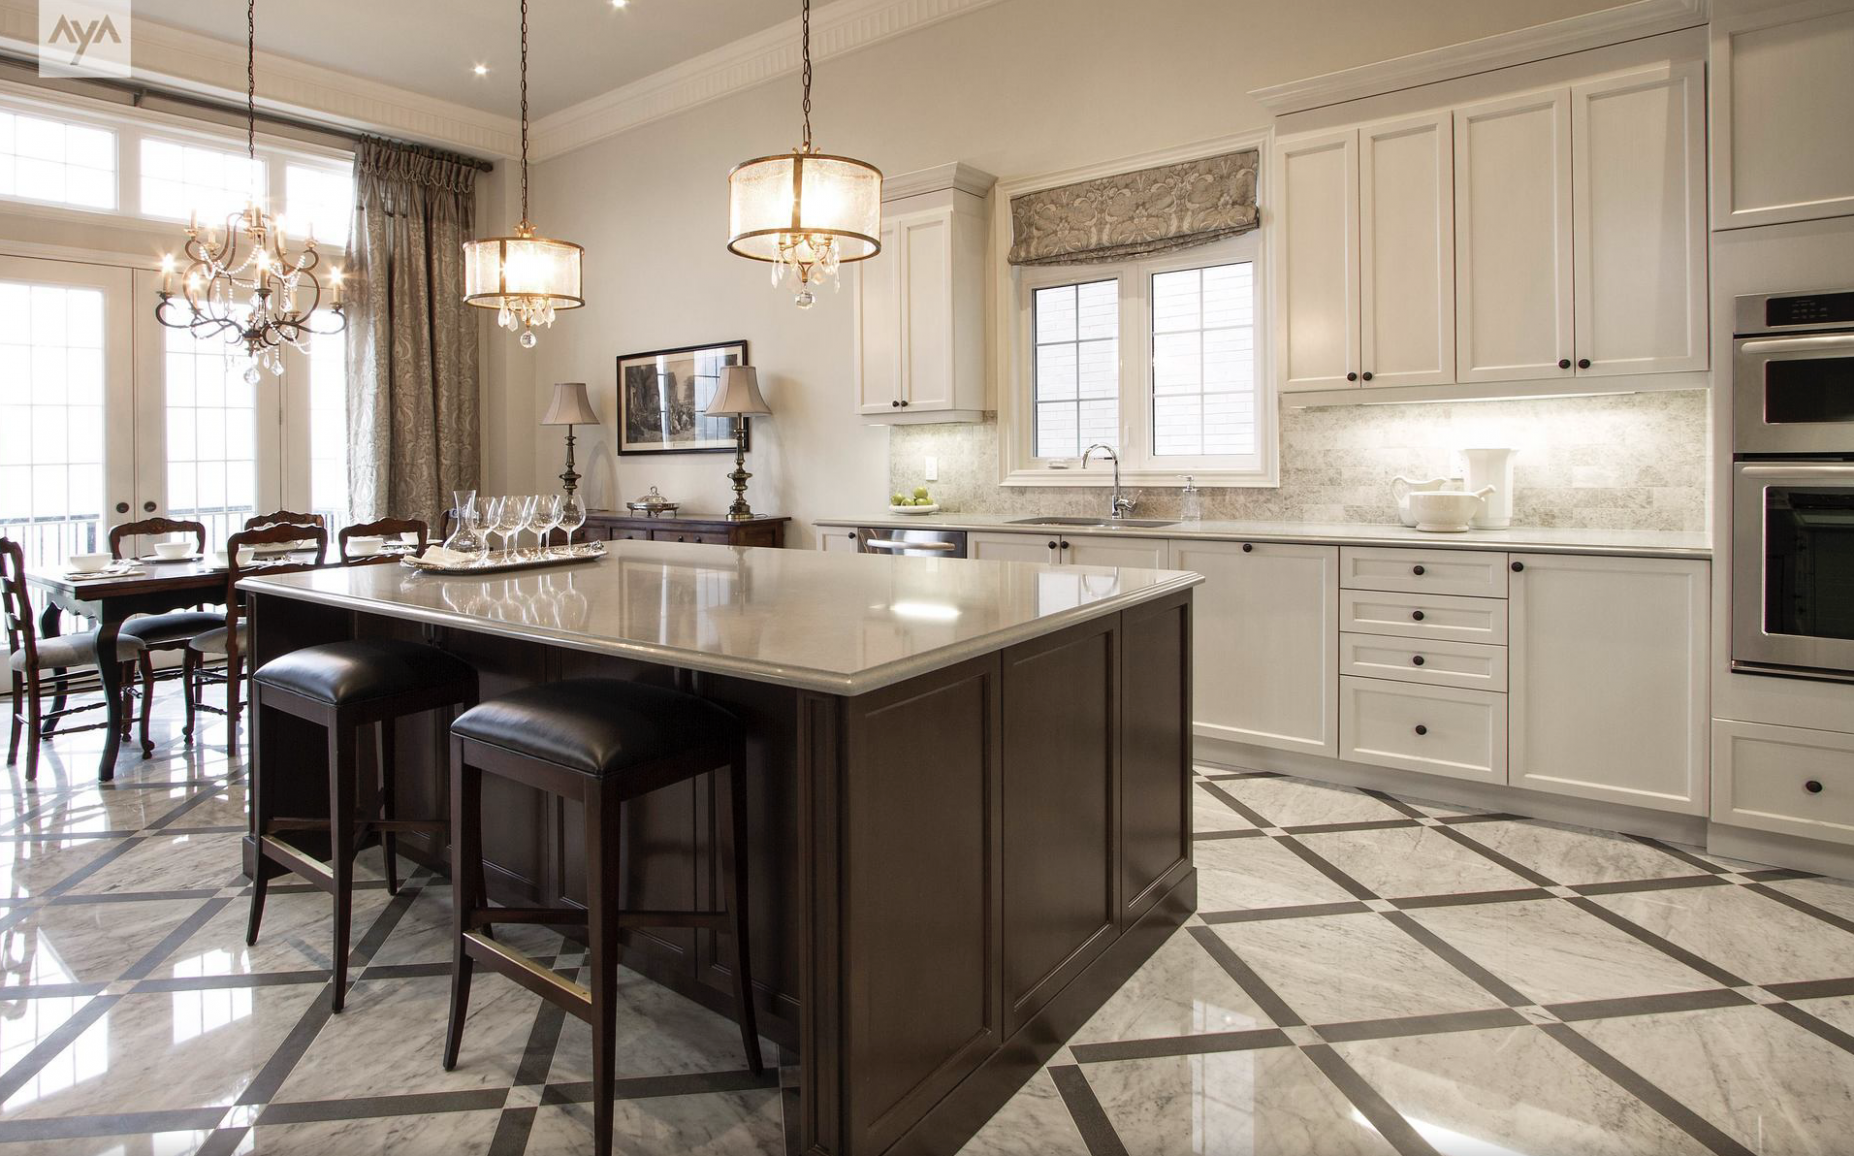 Choosing the Best Kitchen Cabinets for Your Home - Best Home Kitchen Cabinets